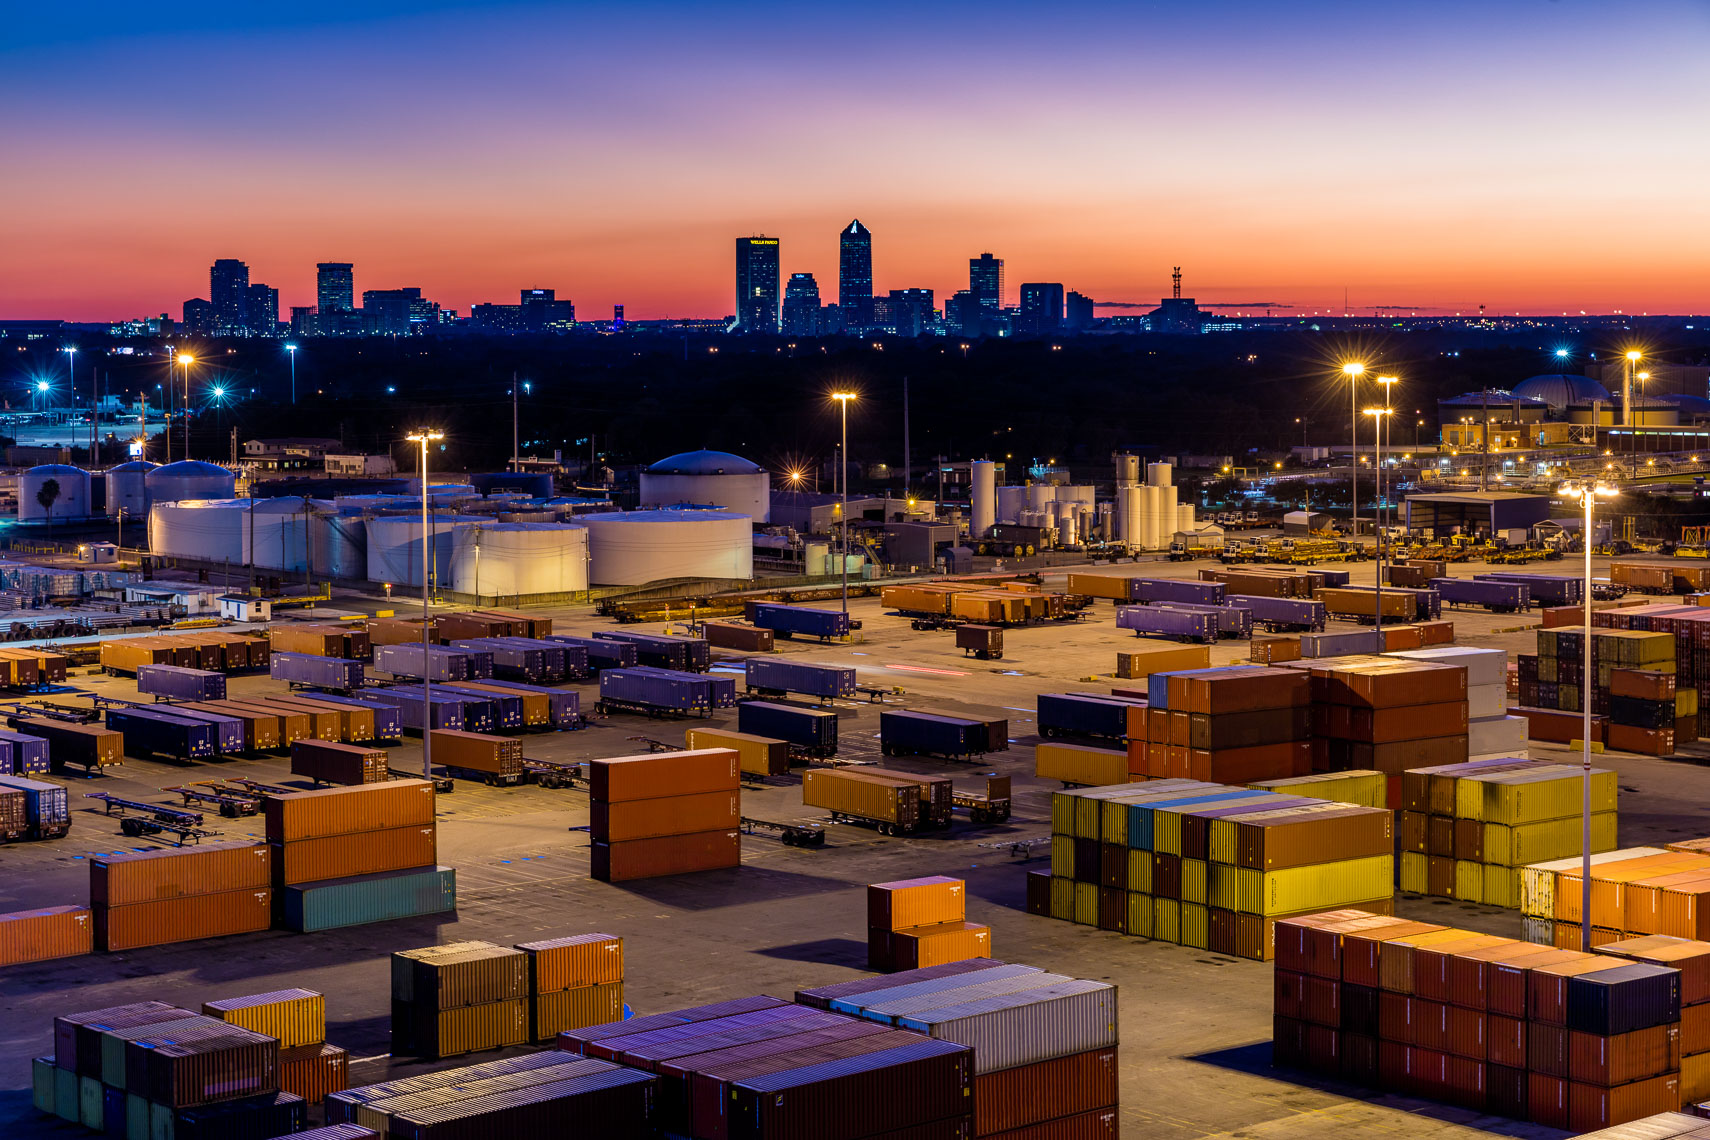 Shipping Containers and the Downtown Jacksonville Skyline